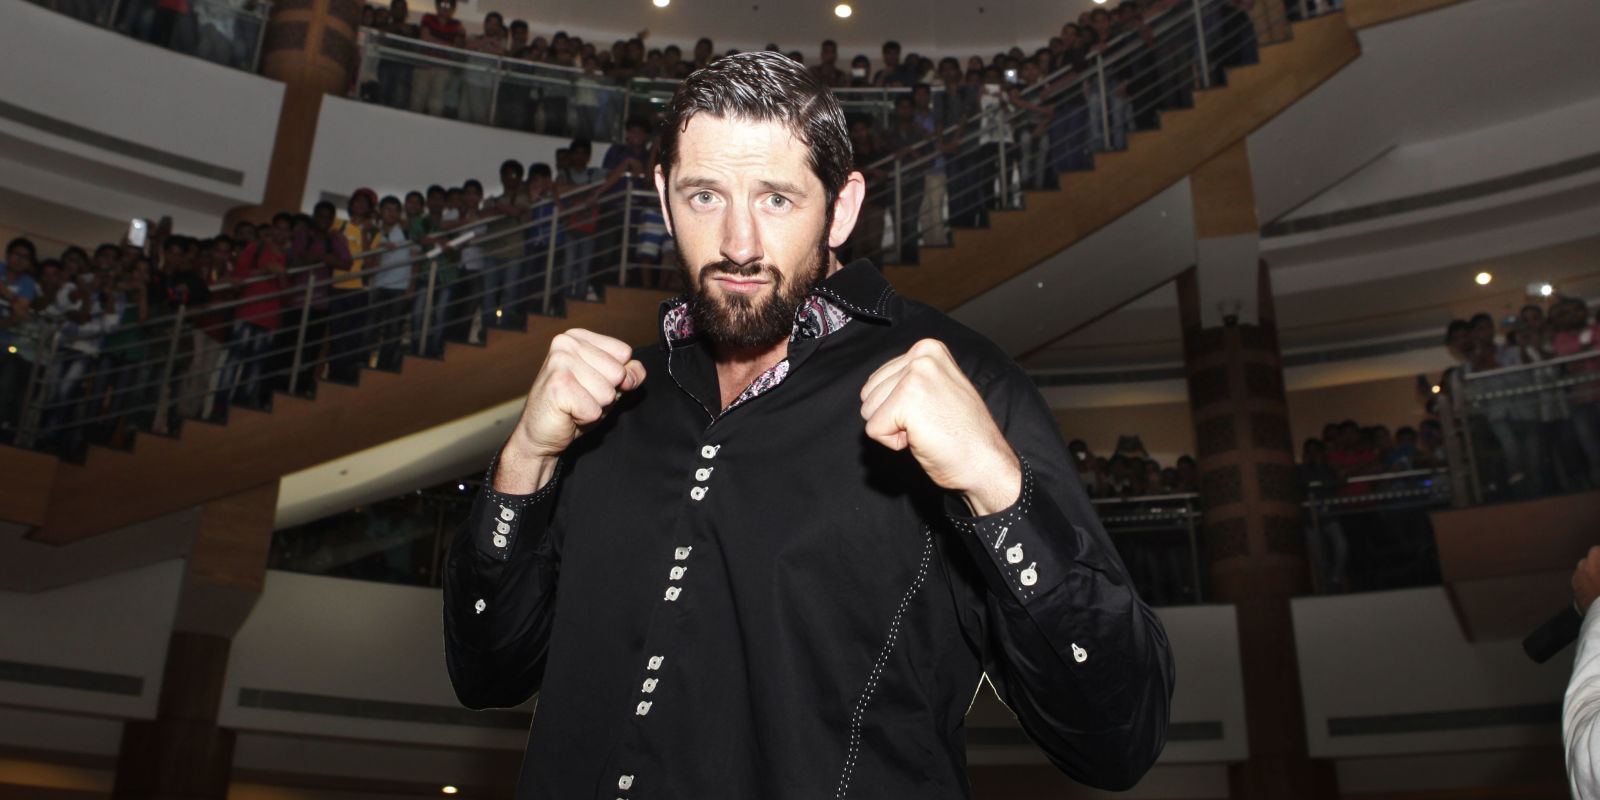 Alexa bliss gif hunt - Wwe Star Wade Barrett Oses With His Fans During An Promotional Event At Inorbit Mall